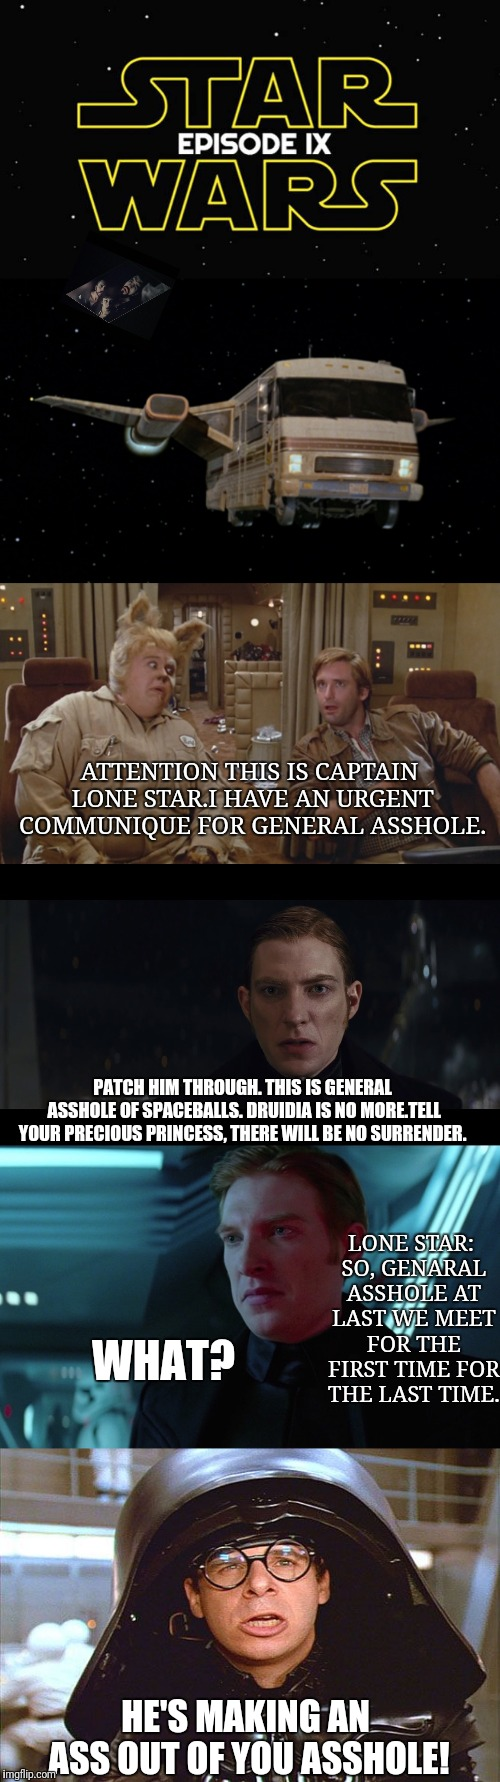 SpaceWars IX | ATTENTION THIS IS CAPTAIN LONE STAR.I HAVE AN URGENT COMMUNIQUE FOR GENERAL ASSHOLE. PATCH HIM THROUGH. THIS IS GENERAL ASSHOLE OF SPACEBALL | image tagged in spaceballs,star wars,superman,general zod,star wars memes | made w/ Imgflip meme maker